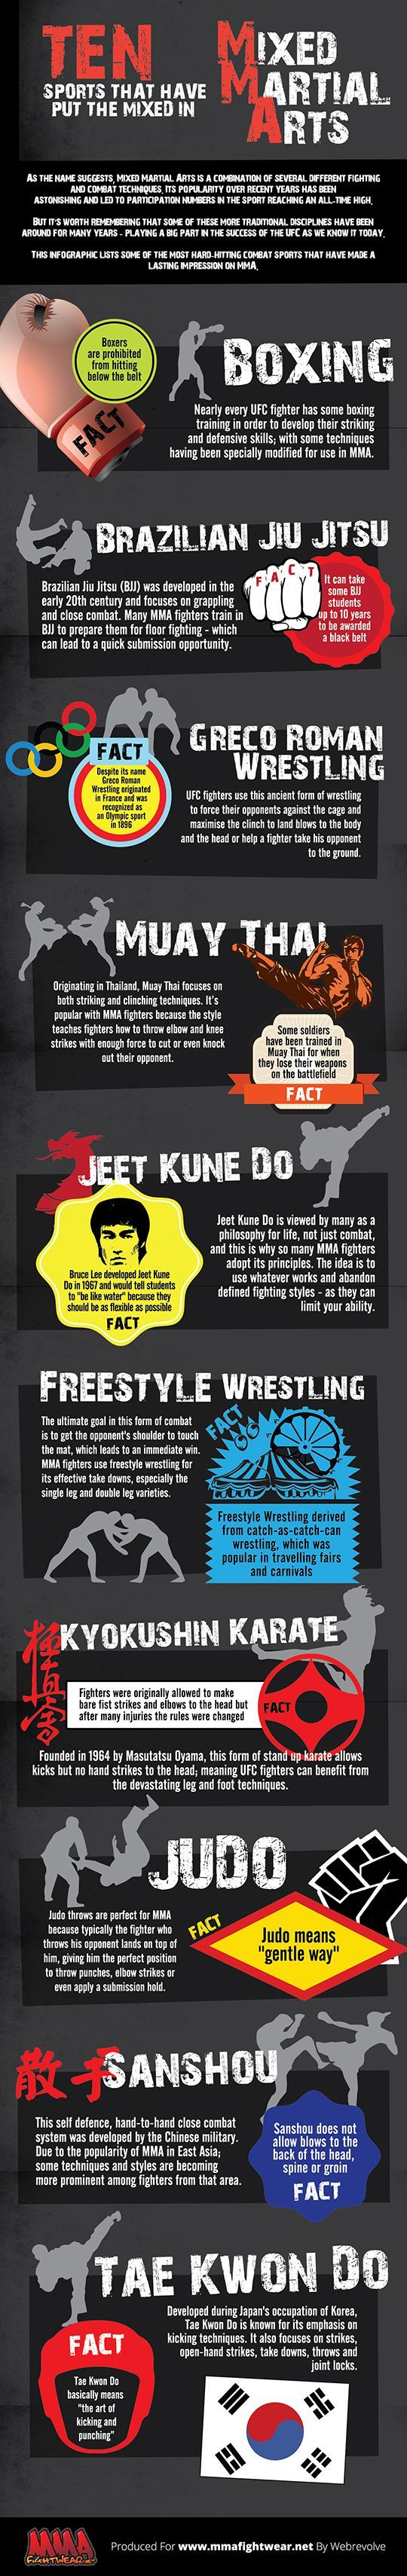 Which should i learn? MMA or karate and judo or muay thai ...